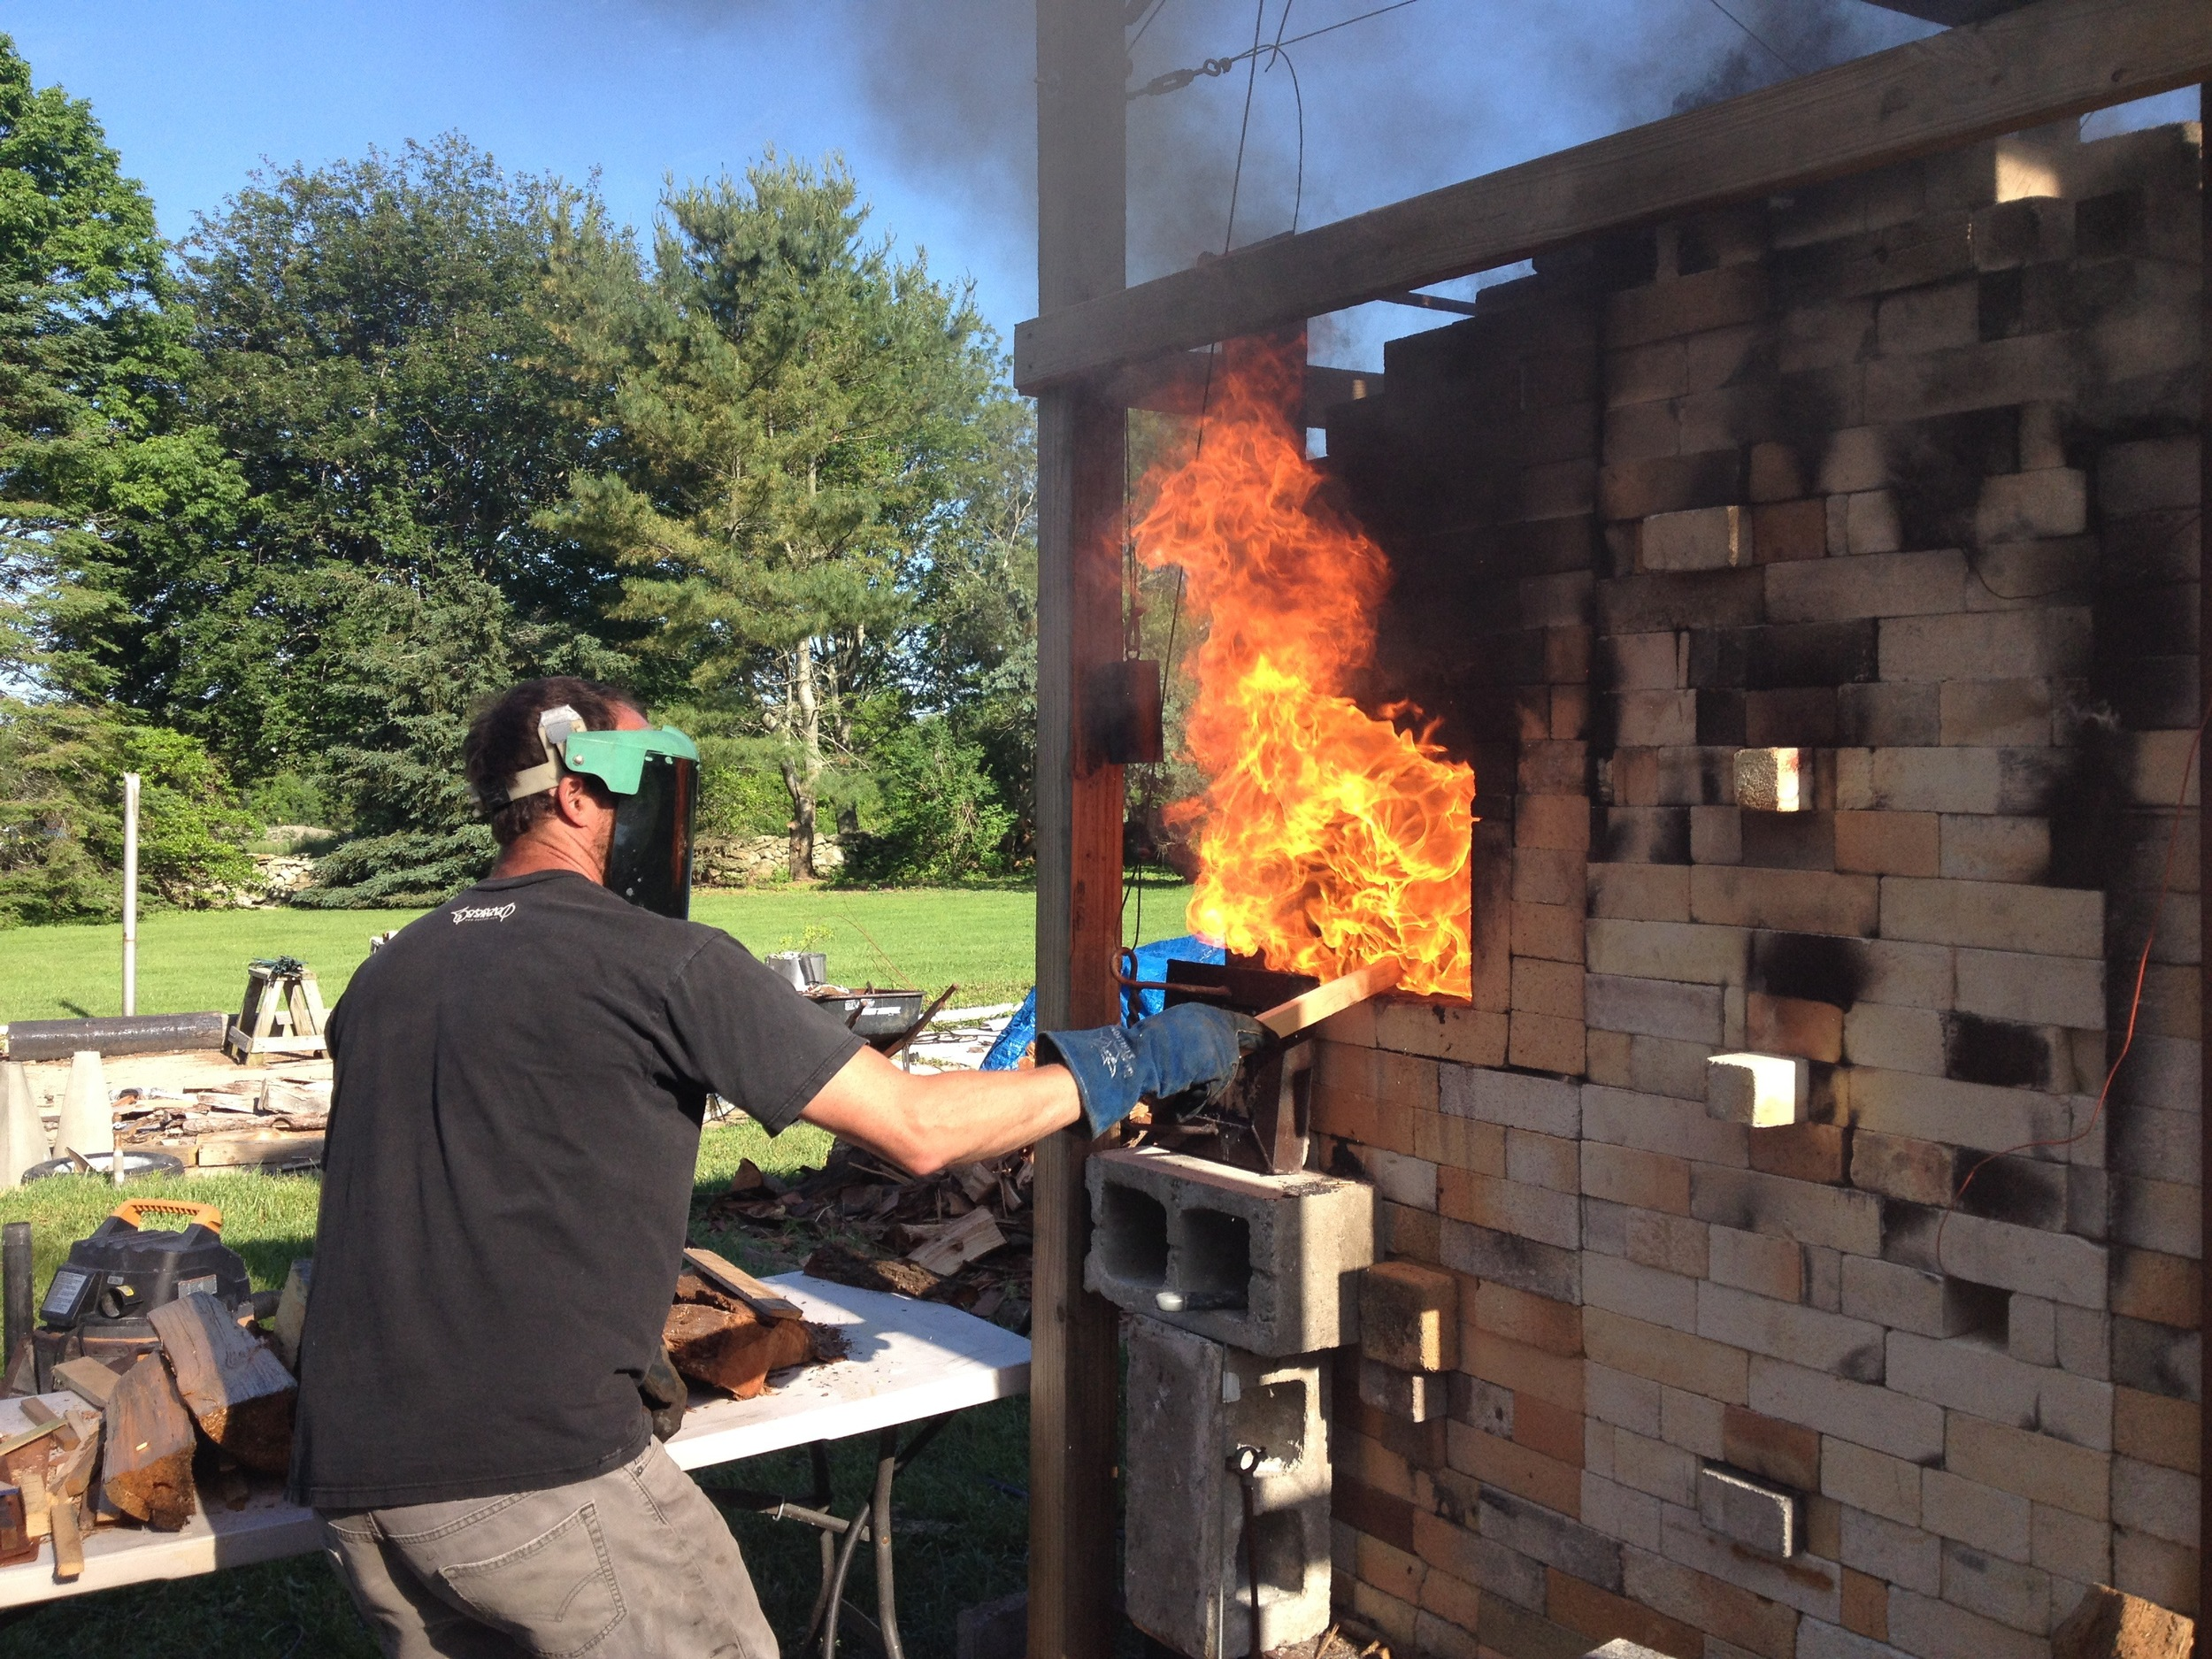 Charlie firing the hybrid wood/soda/gas kiln he built at his home in Little Compton.